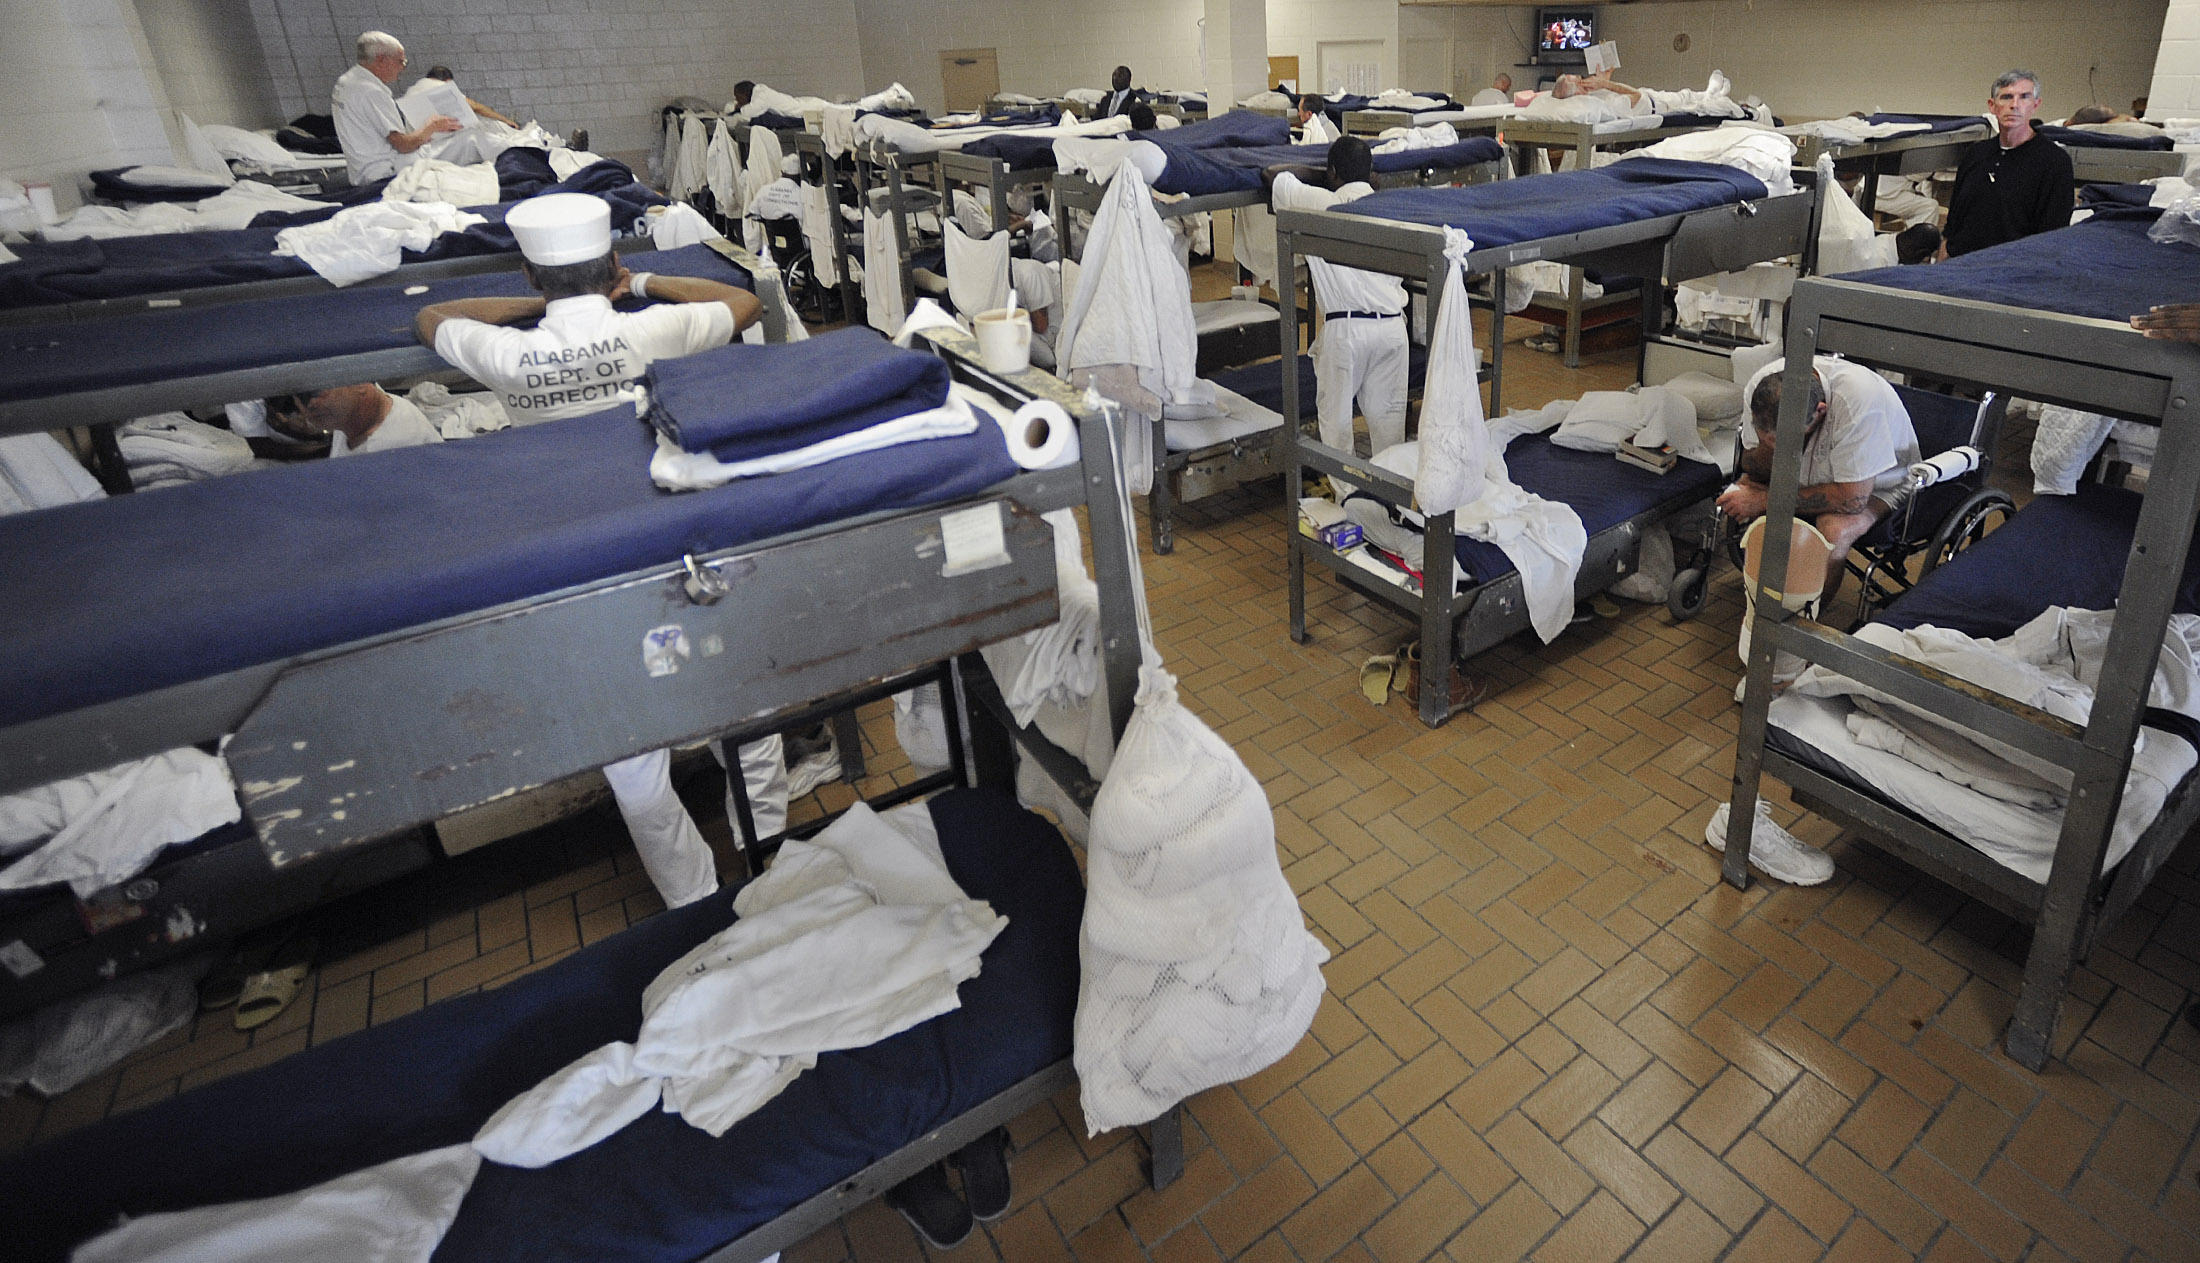 alabama prison overcrowding alabama public radio prison commissioner says most problems come back to overcrowding